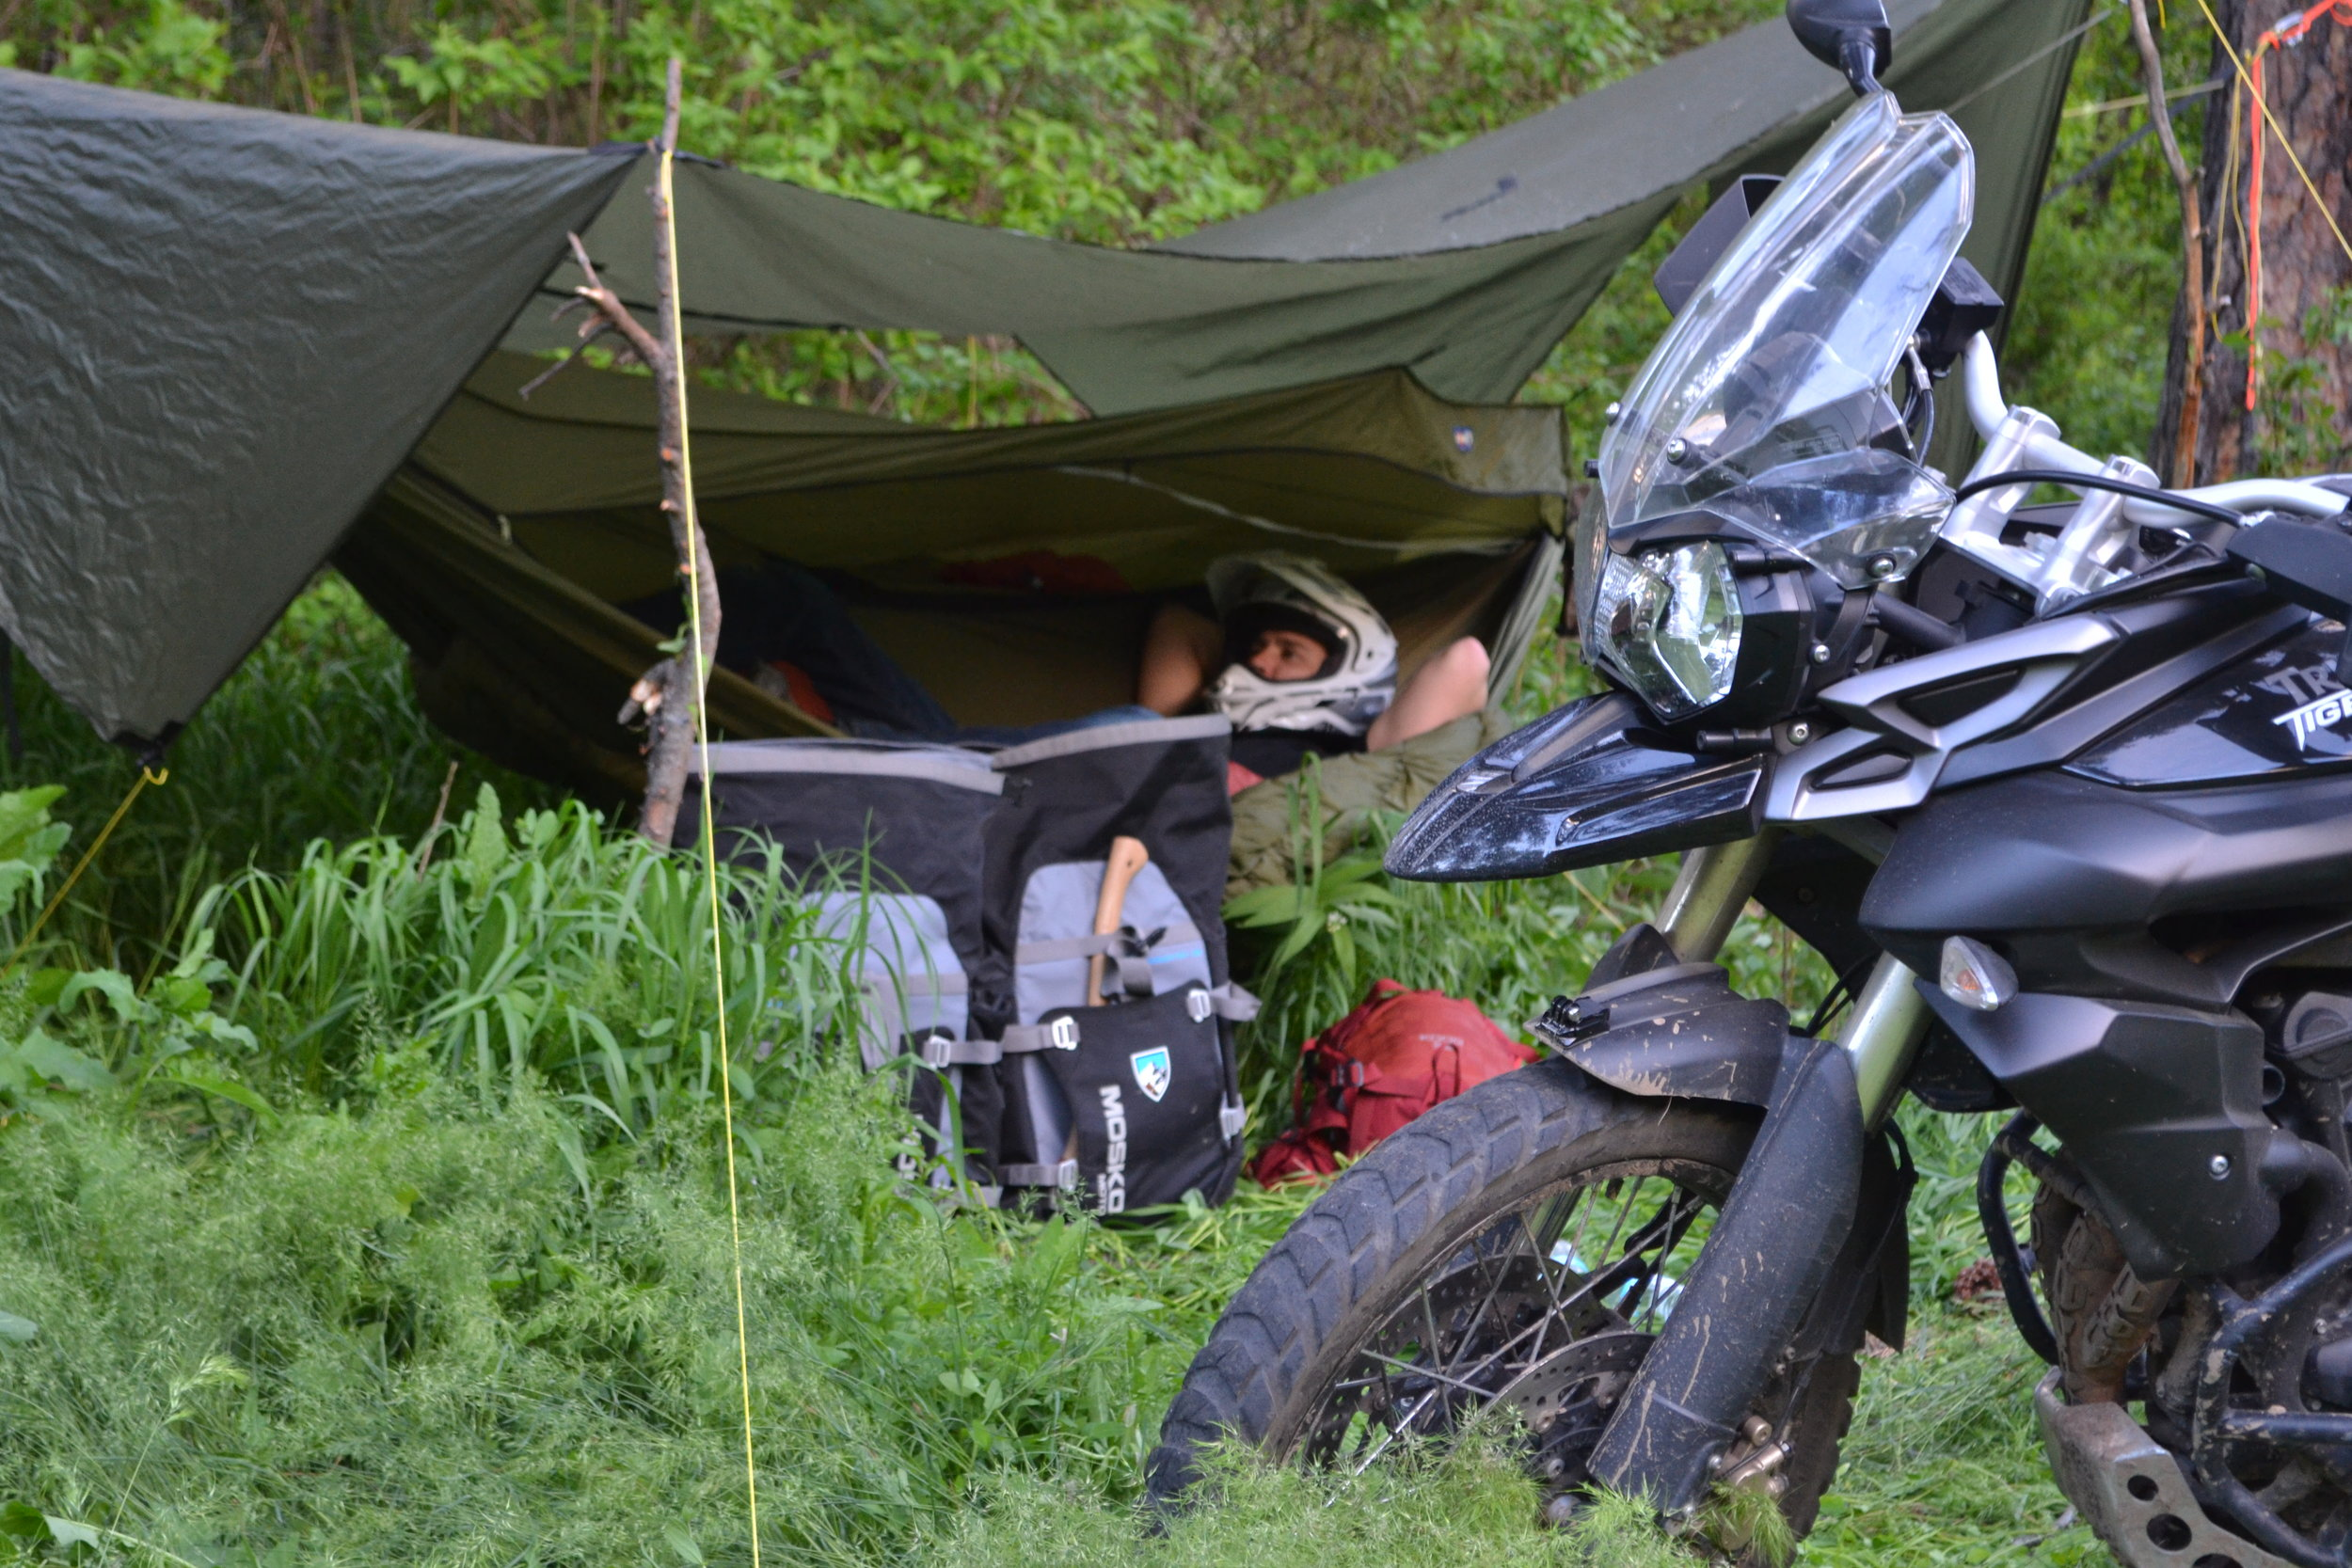 This is a Warbonnet Hammocks, tarp and quilt set up. Warbonnet is dedicated to preserving the wild lands we enjoy.  Using the hammocks really helps leave no trace and is compact and very convienent for the Adventure Motorcyclist.